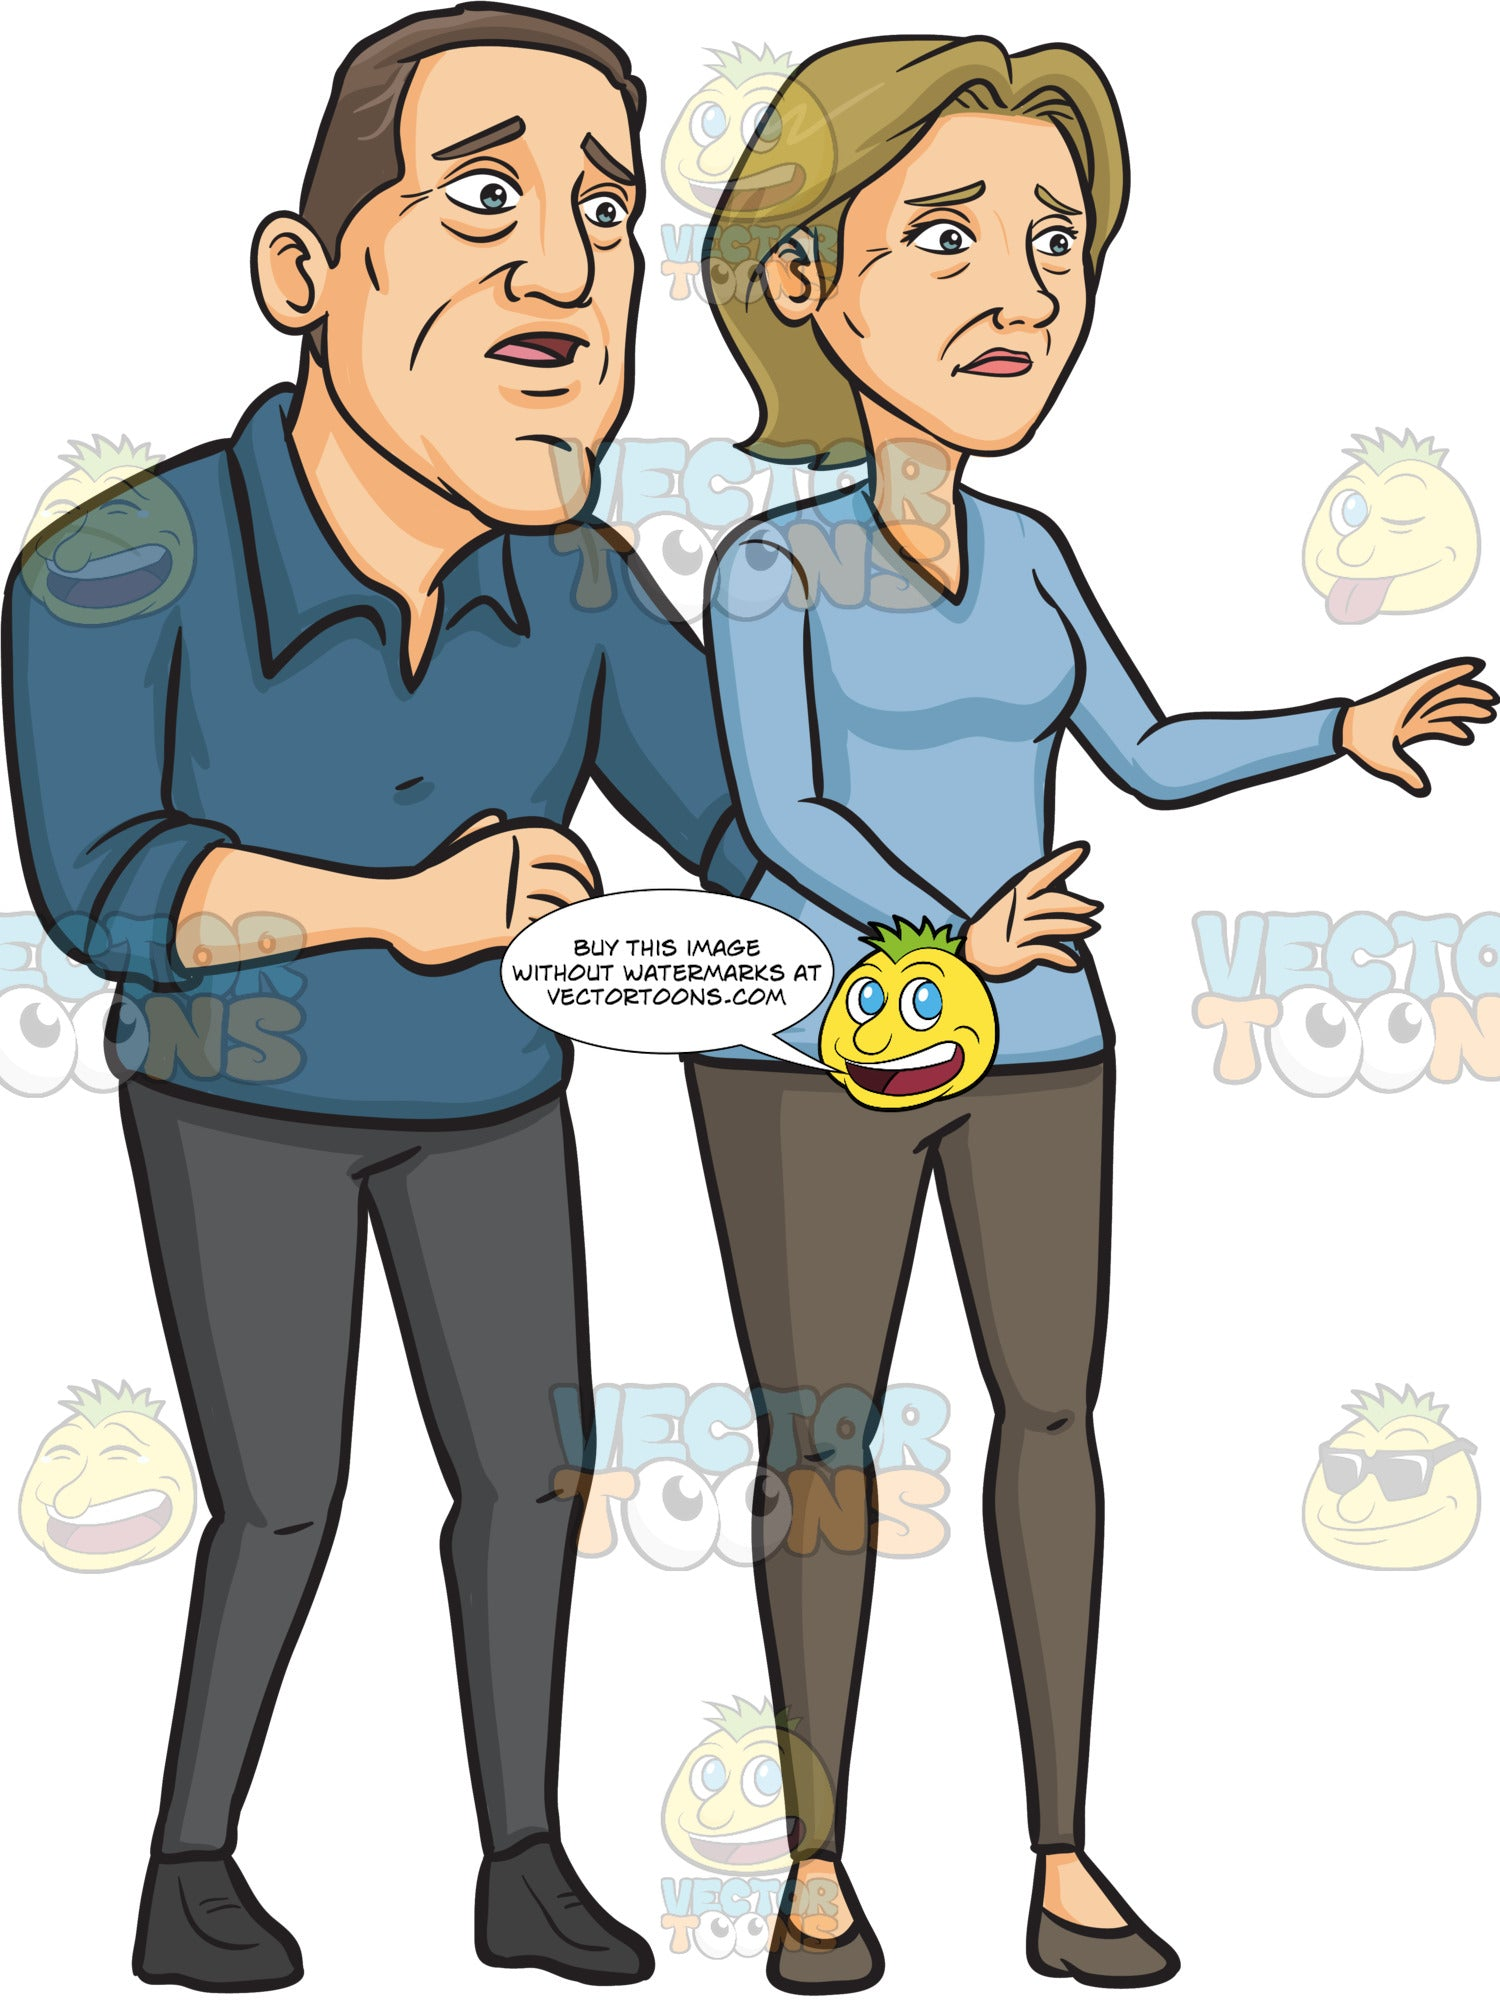 A Worried Middle Aged Couple